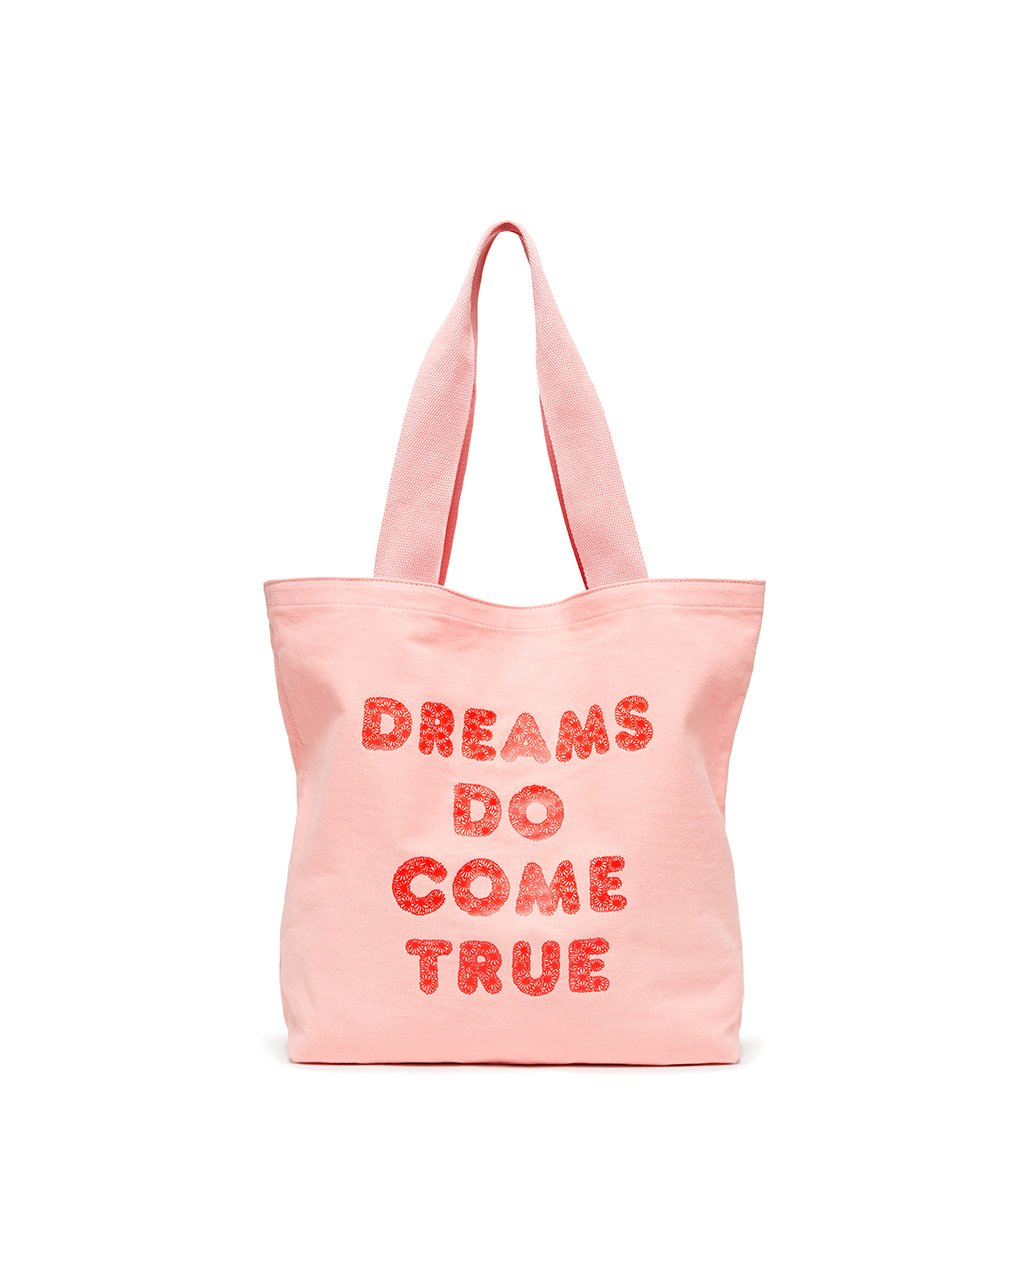 This lightweight canvas tote comes in pink, with 'Dreams Do Come True' printed in red on the front.